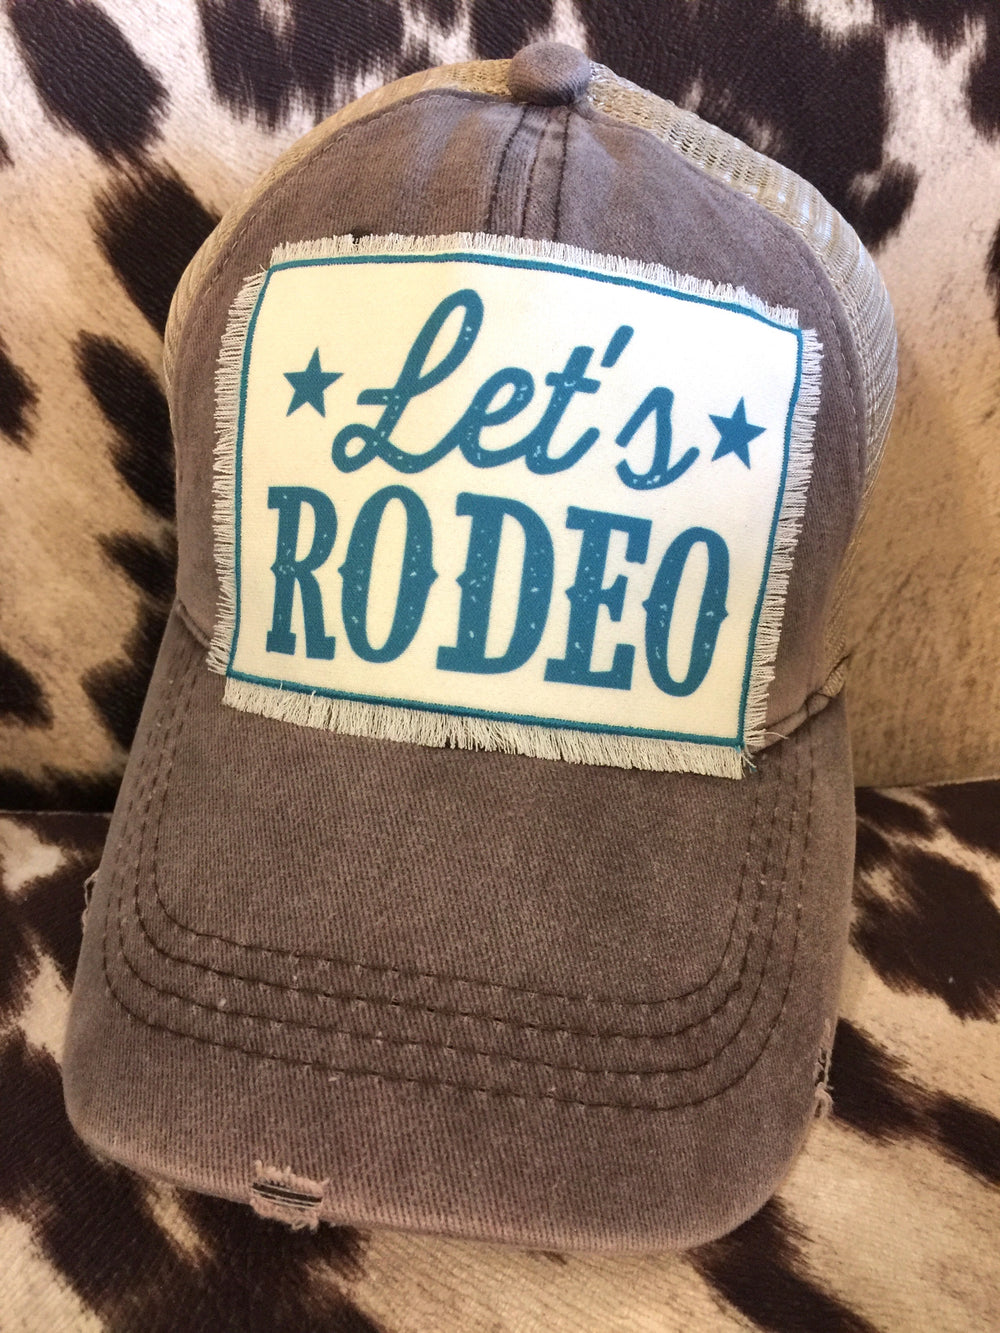 The Big Bend Let's Rodeo Ball Cap